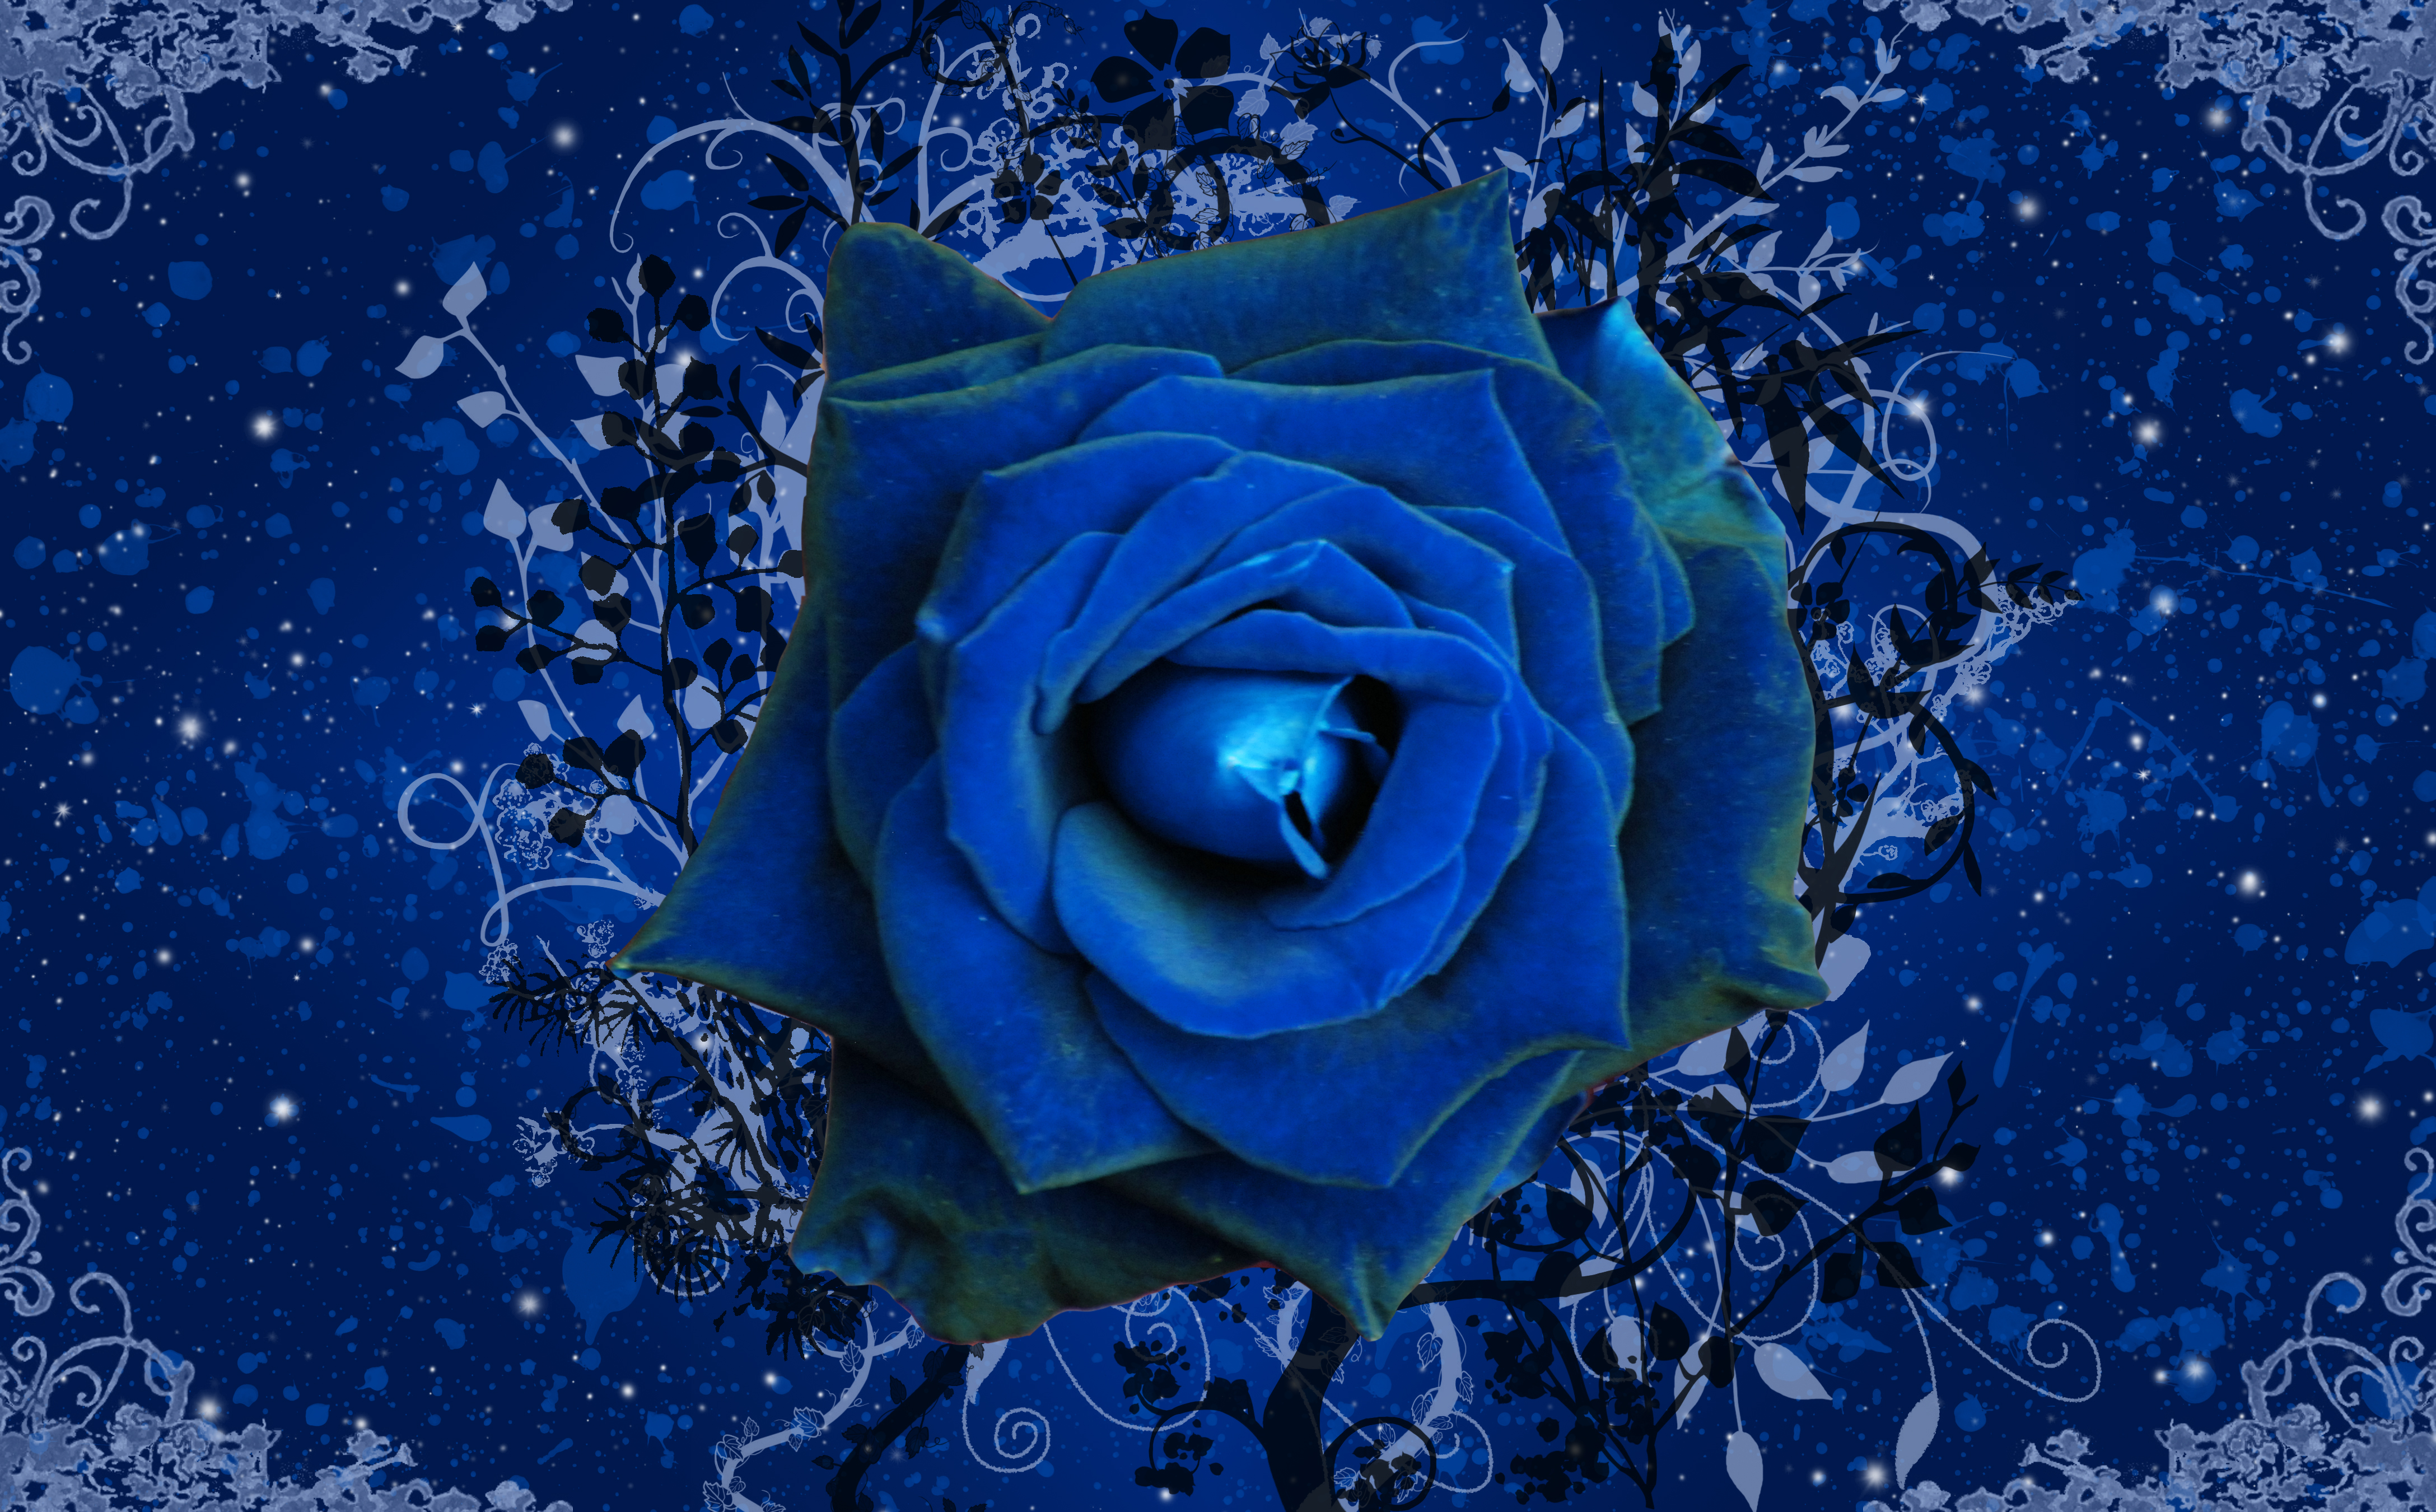 blue rose 4k ultra hd wallpaper | background image | 4350x2700 | id